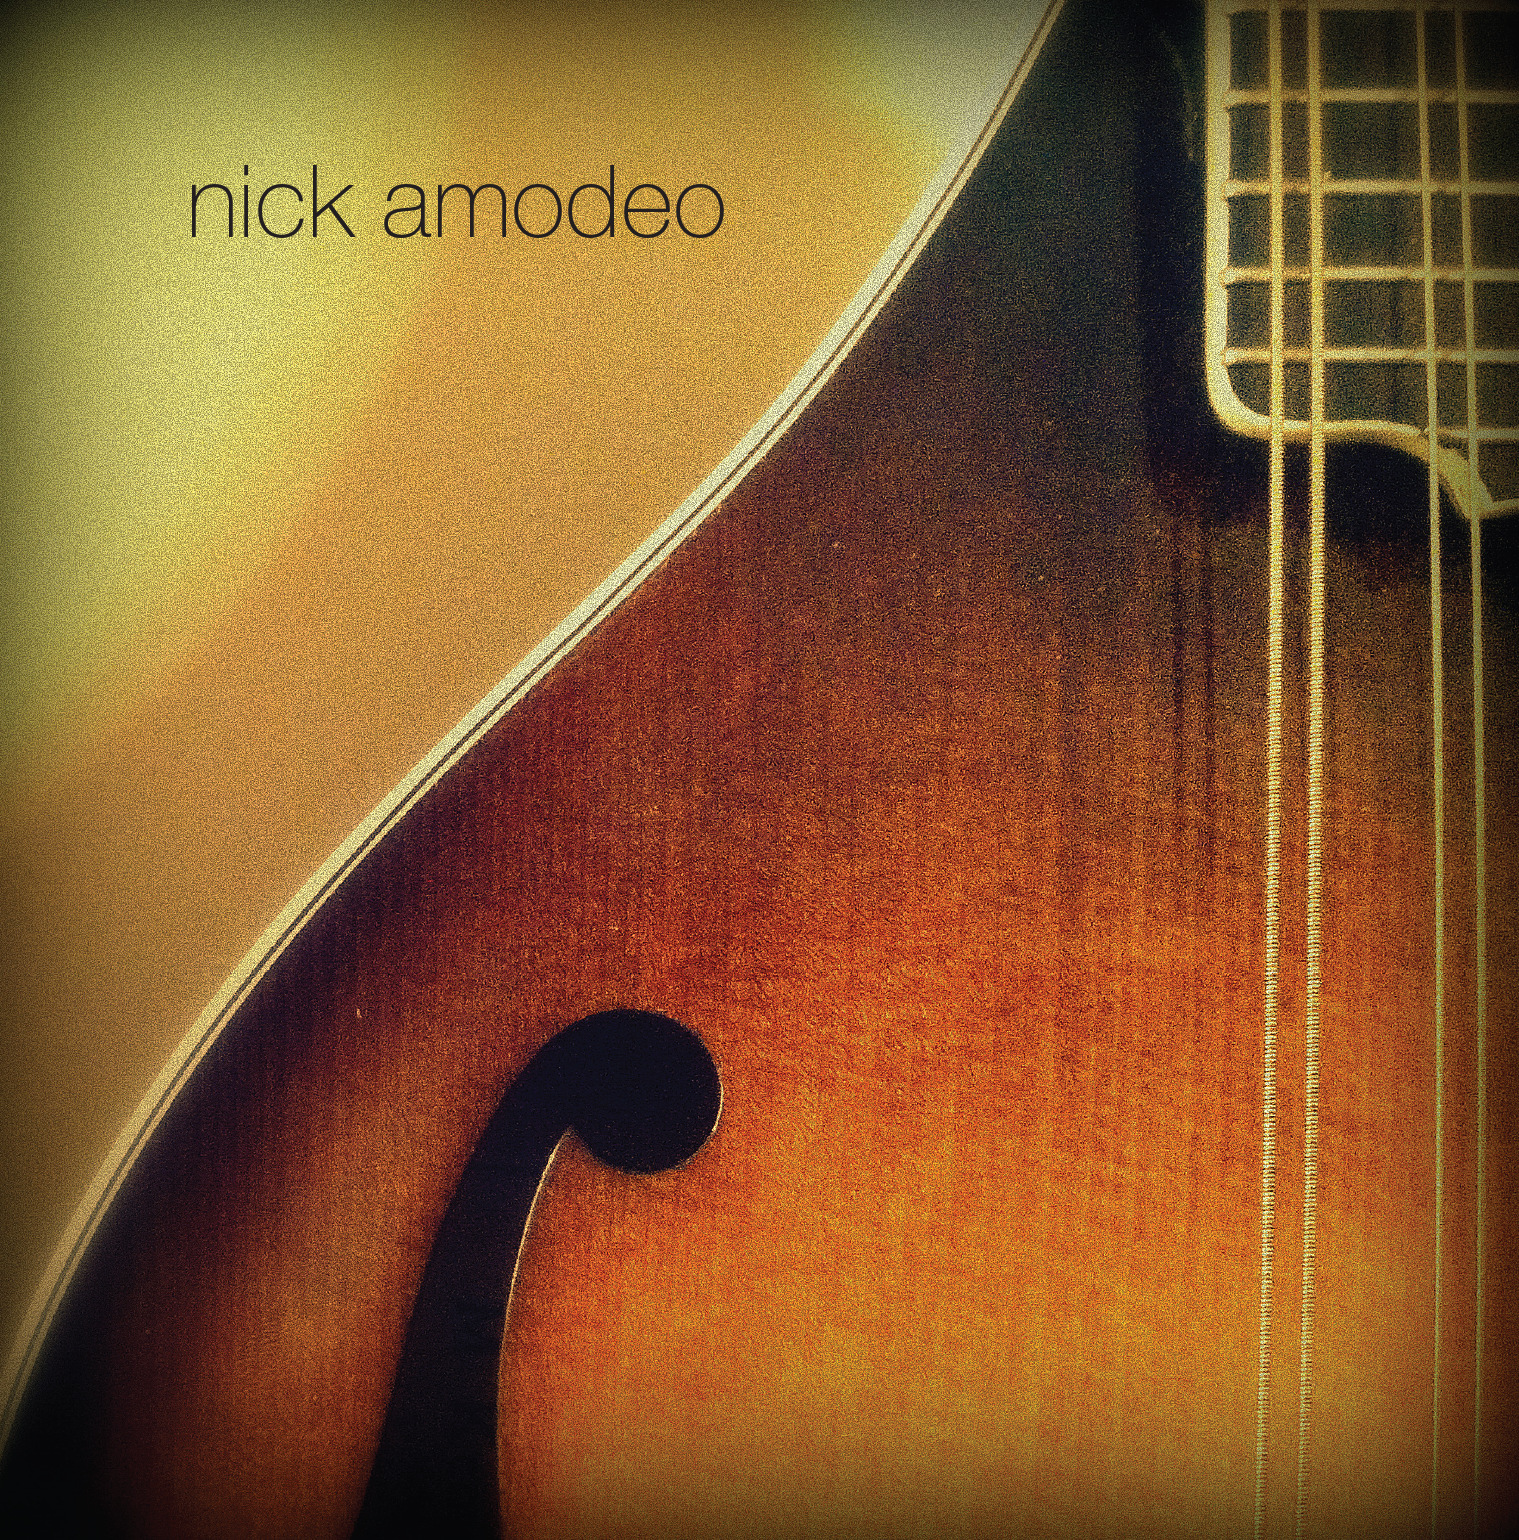 nickAmodeo-cover-1.jpg